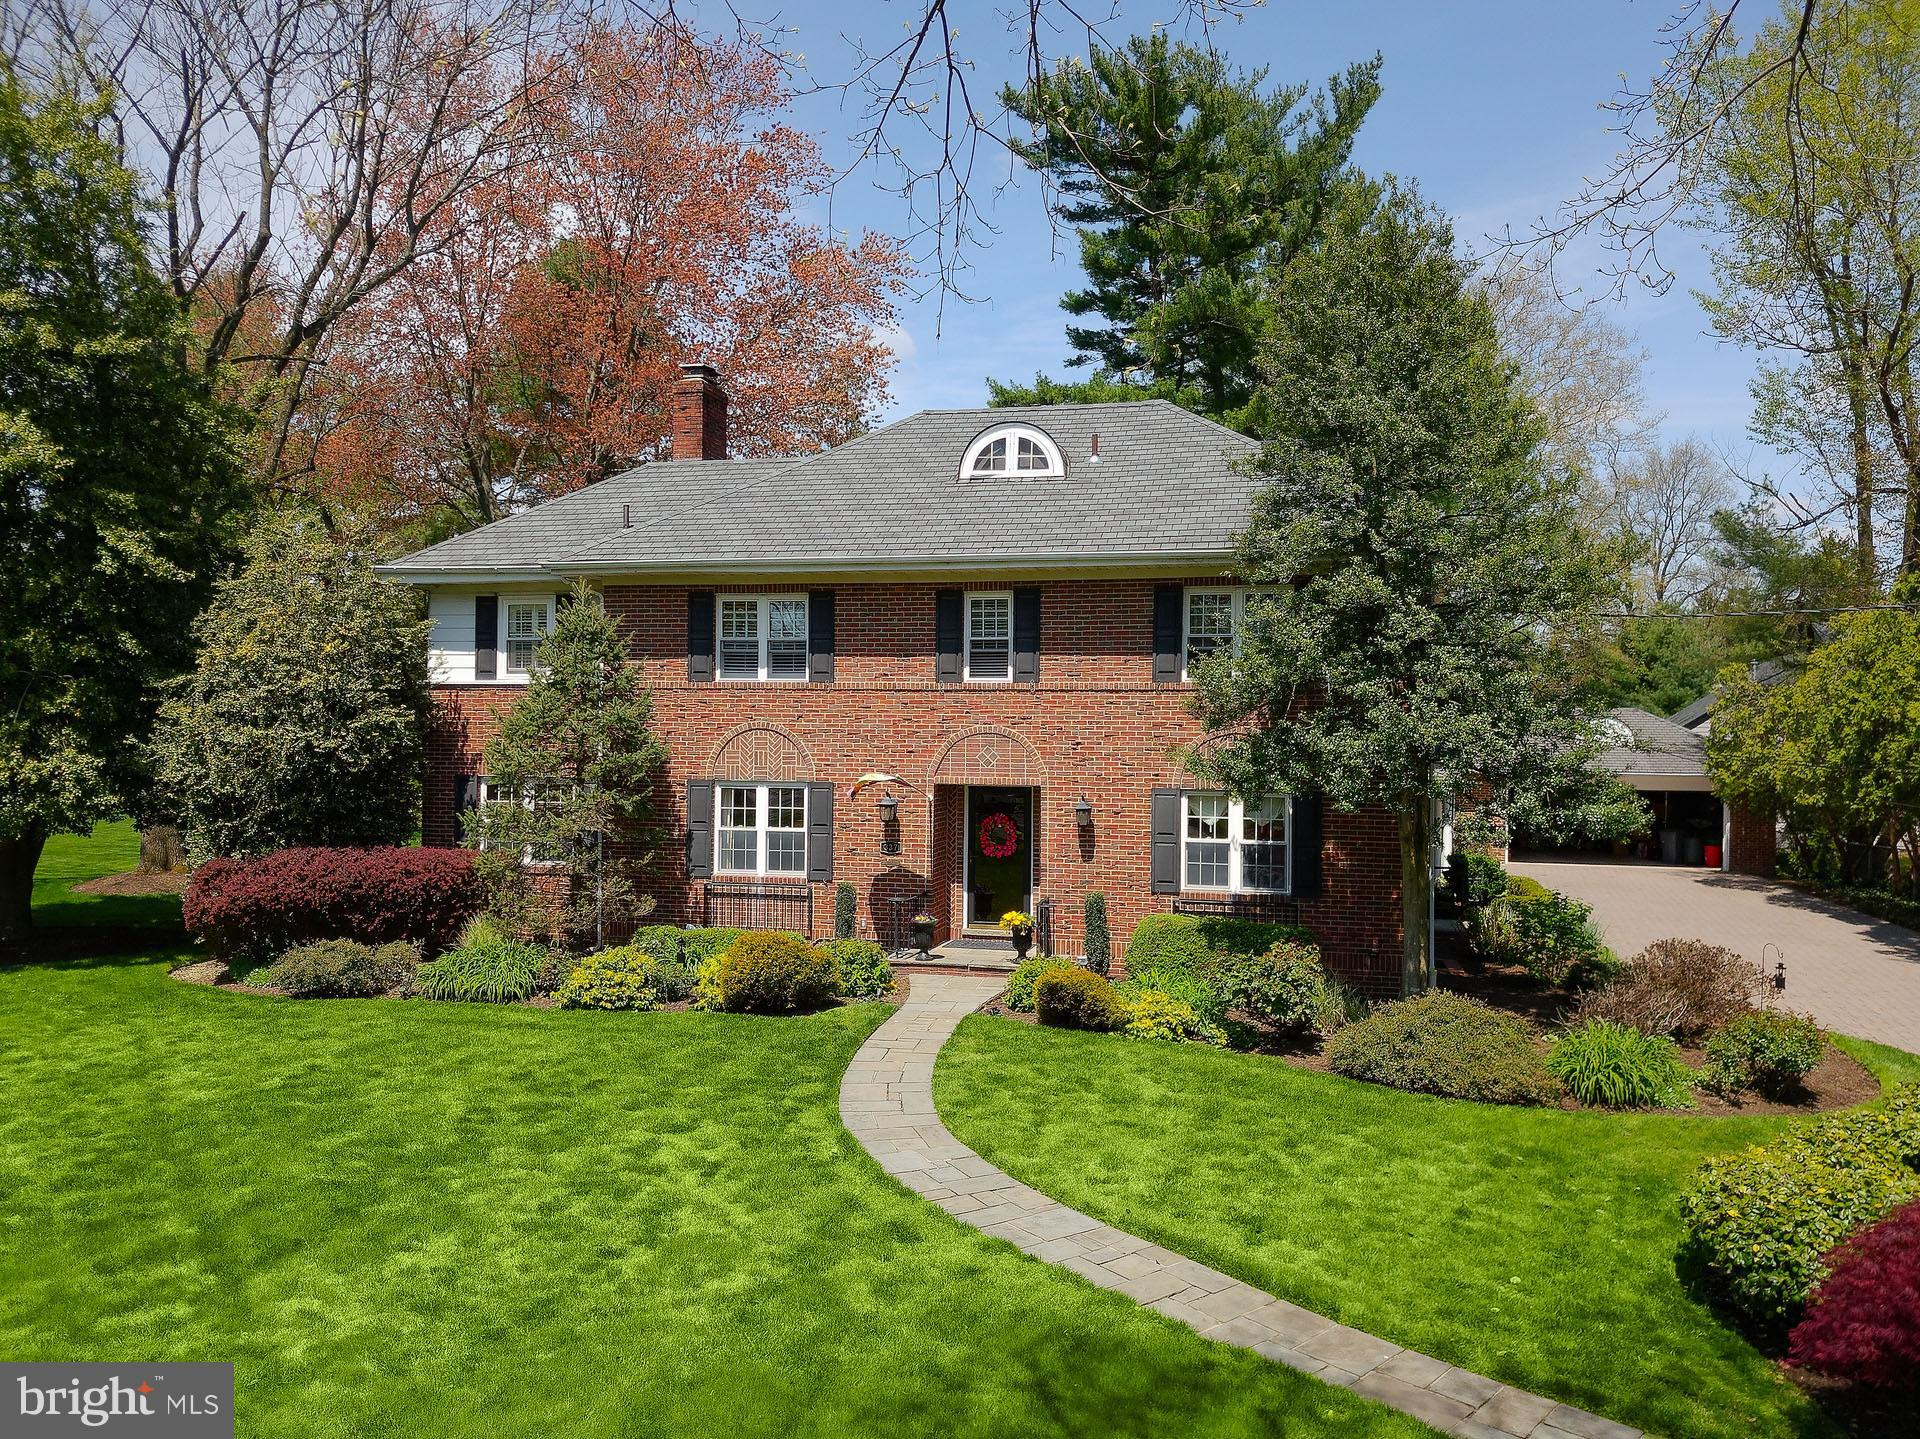 337 Station Avenue, Haddonfield, NJ 08033